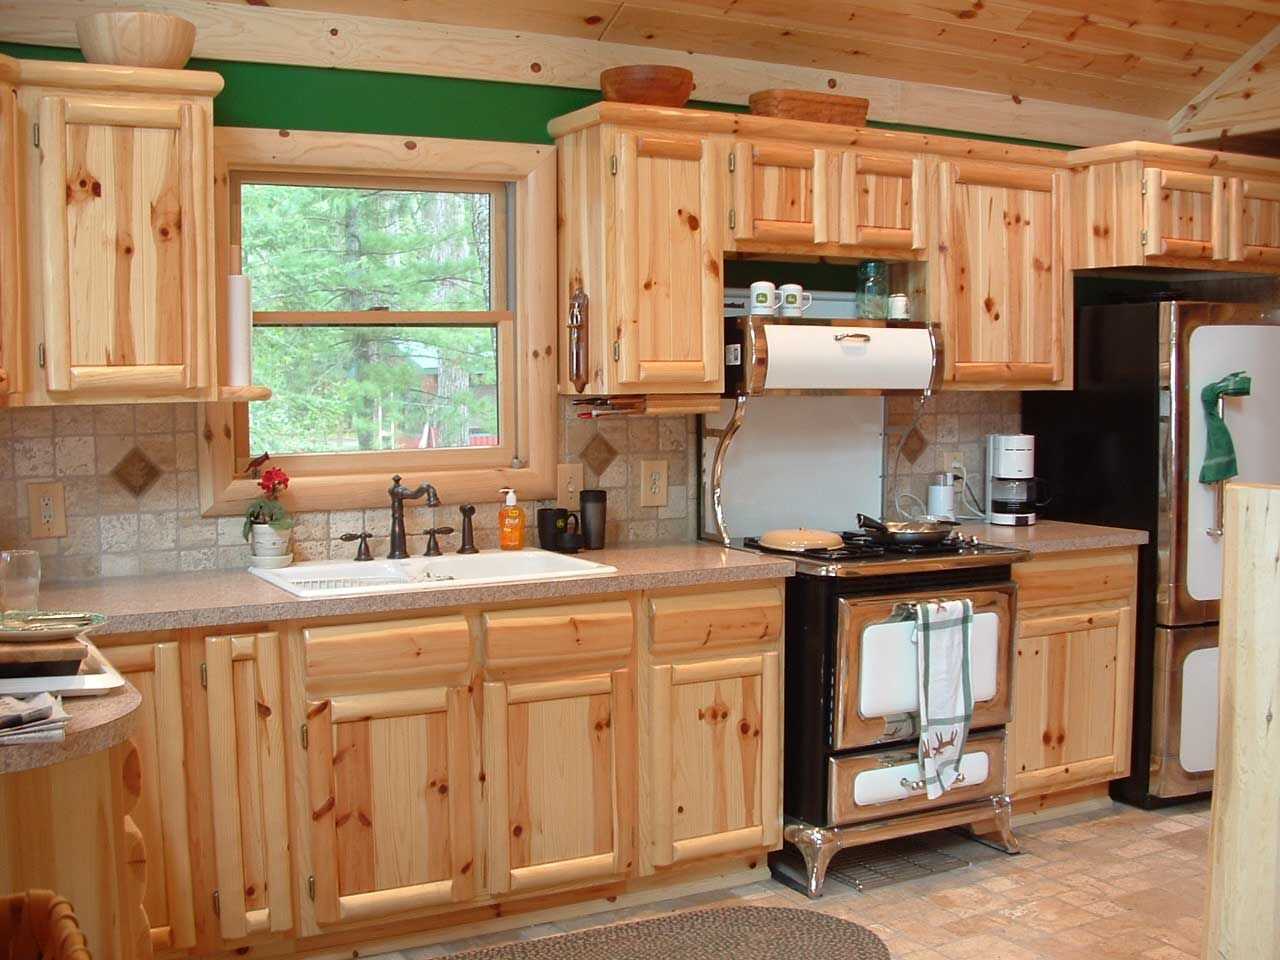 Knotty Pine Kitchen Cabinets A Premium Traditional Choice Designalls In 2020 Pine Kitchen Cabinets Rustic Kitchen Cabinets Pine Kitchen